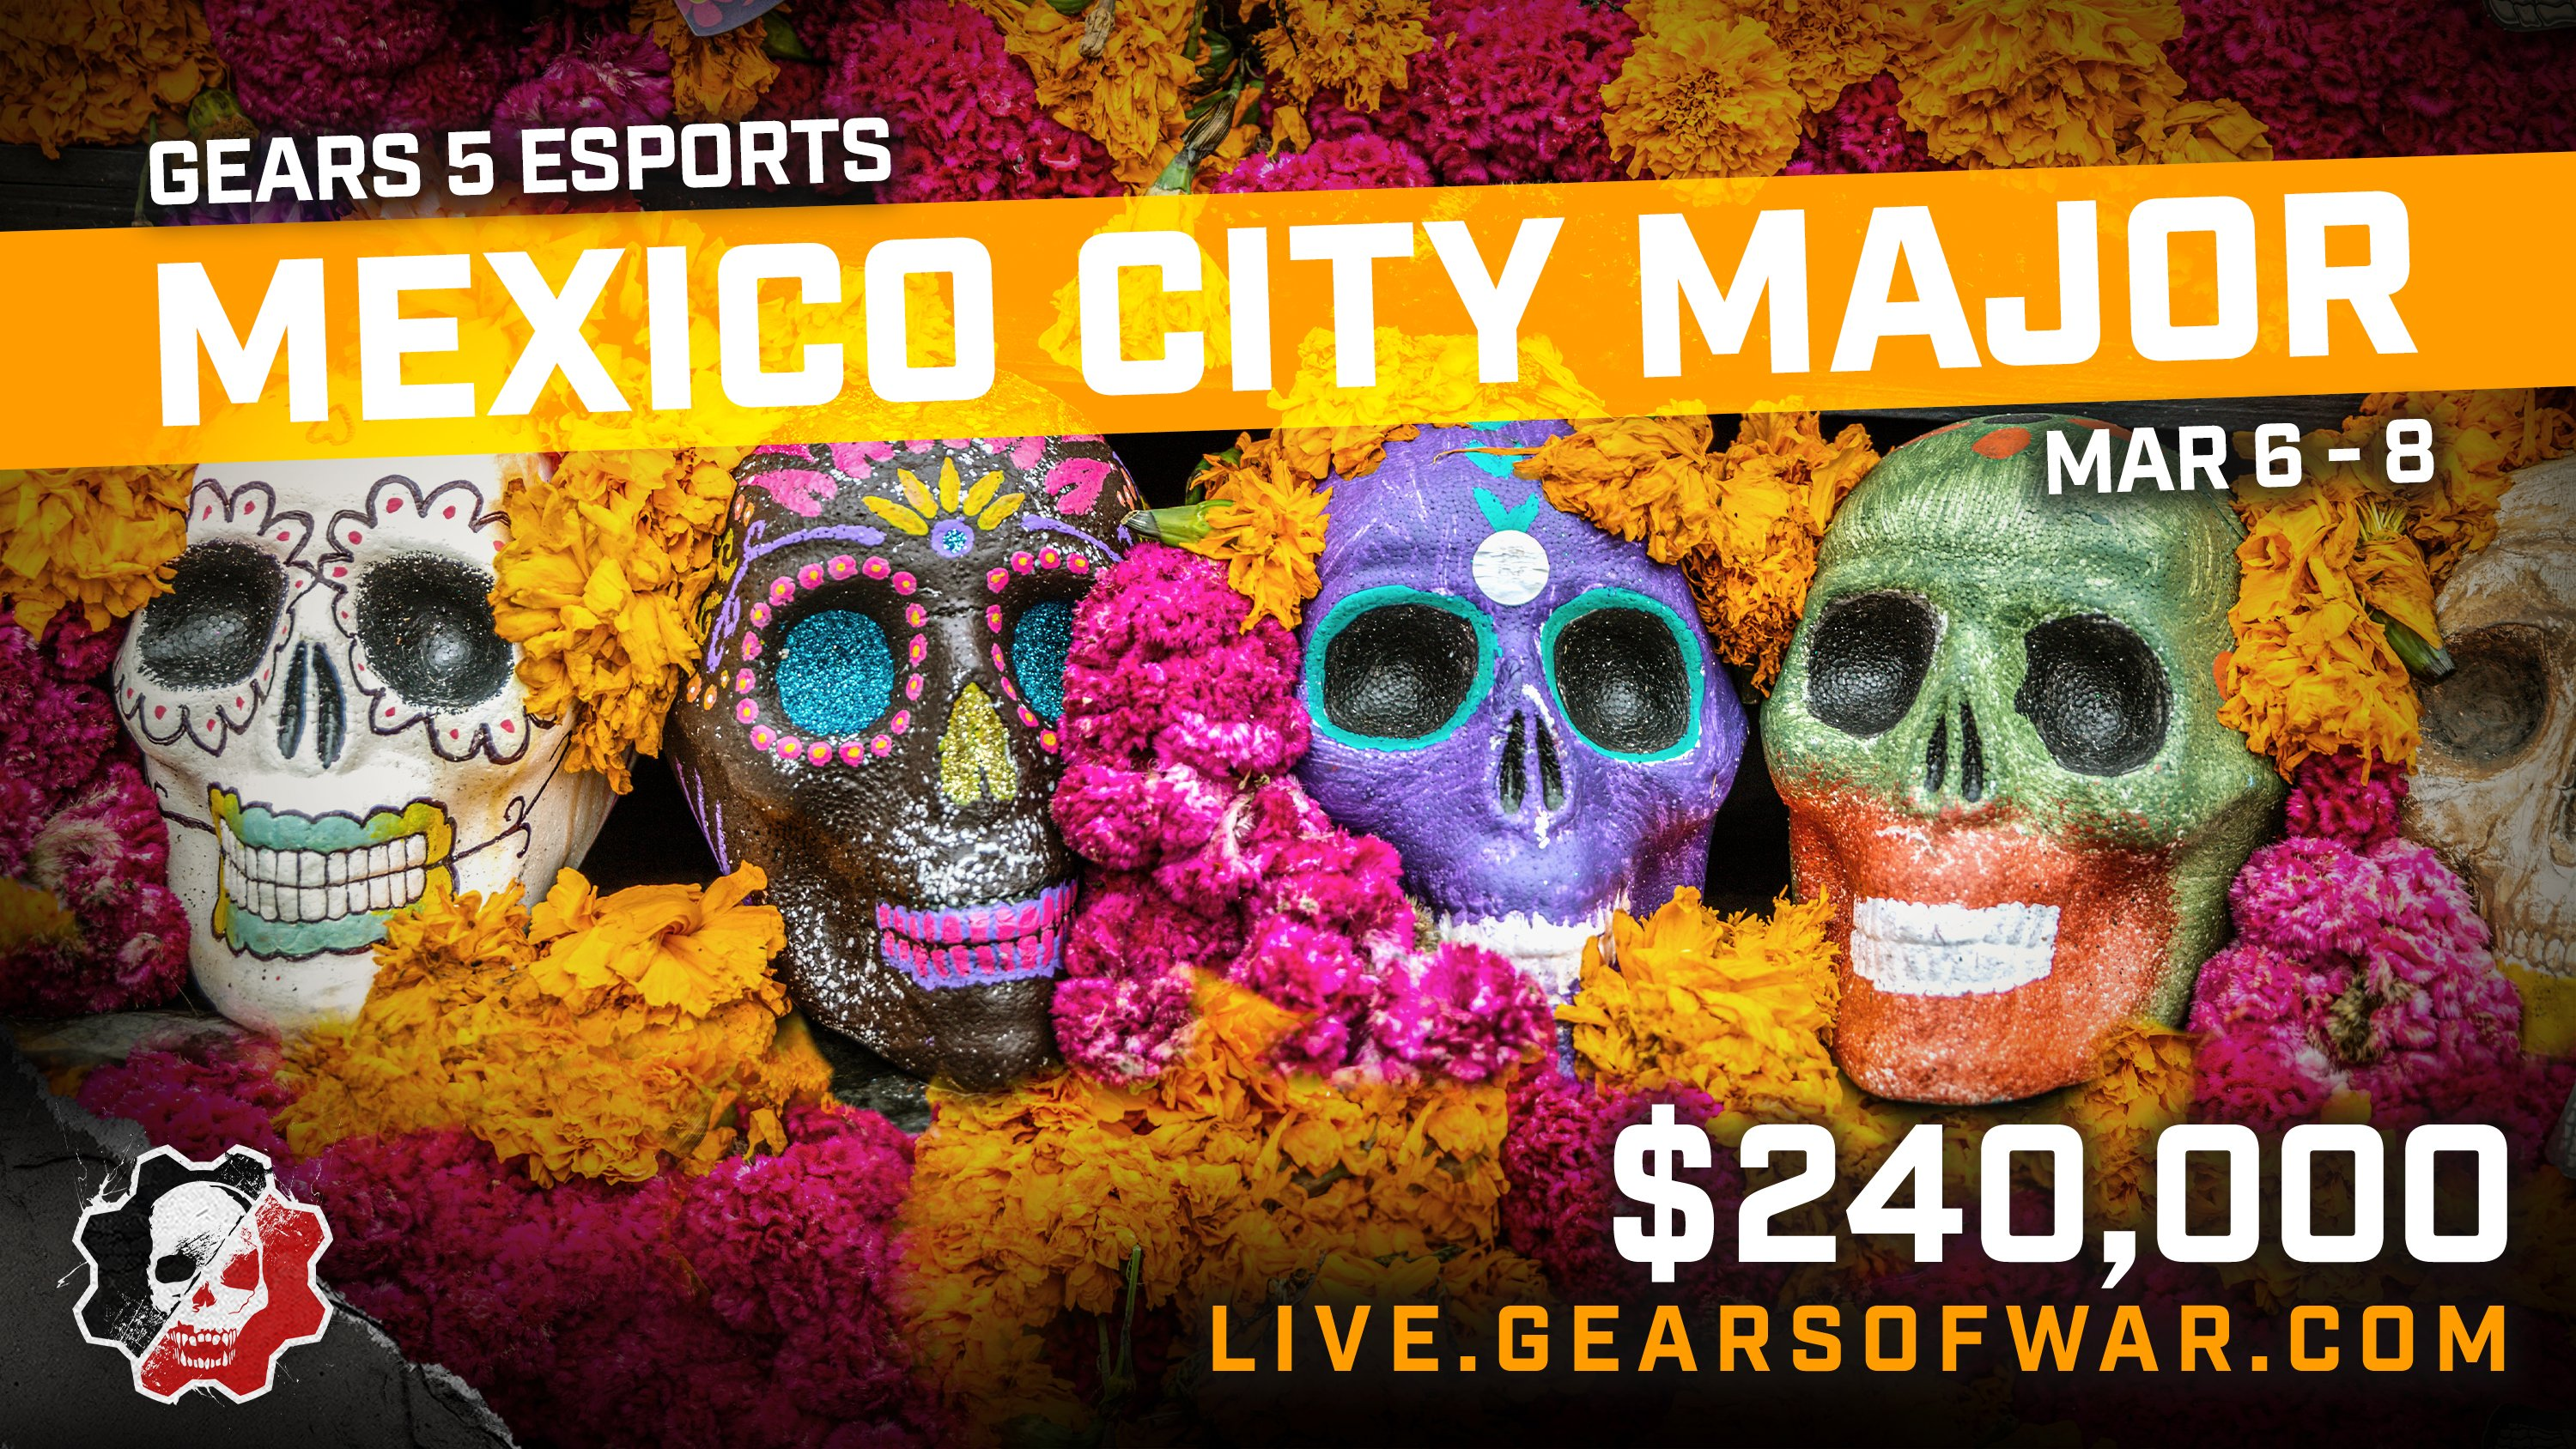 Four painted skulls are placed next to each other surrounded by flowers. Text Reads: Gears 5 Esports. Mexico City Major. Mar 6 - 8. $240,000. Live.gearsofwar.com.